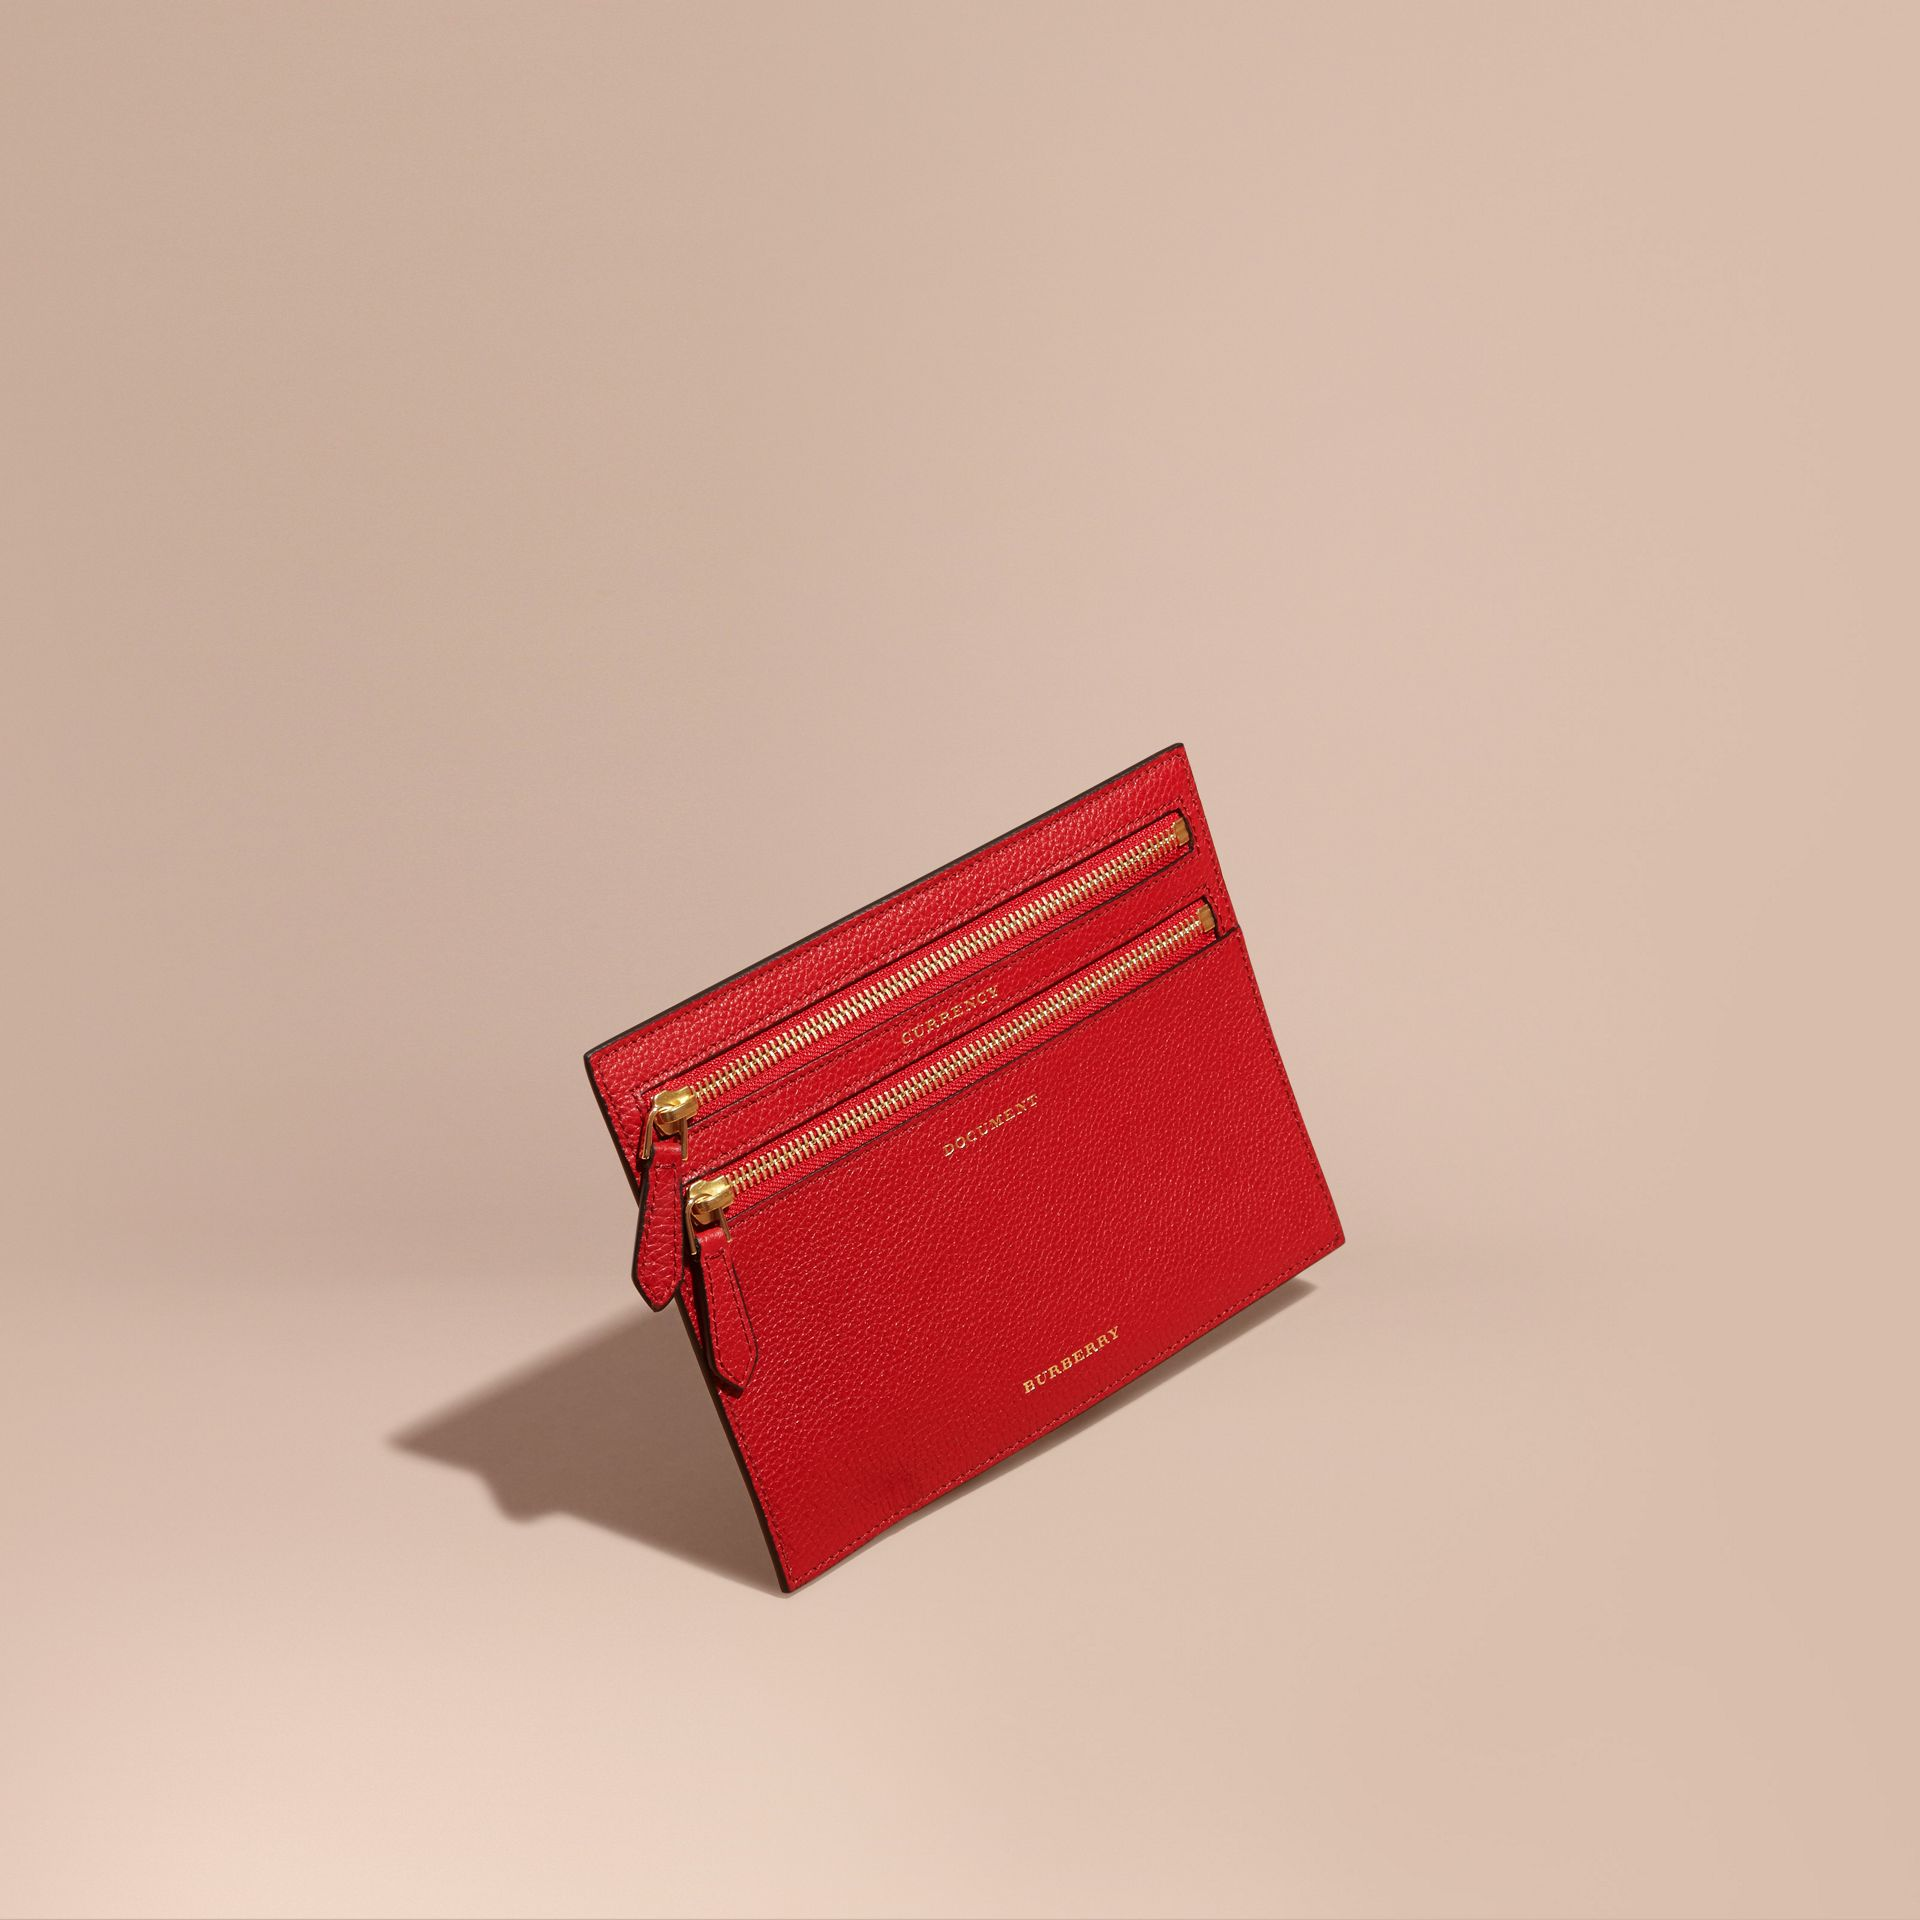 Portefeuille multidevise en cuir grené (Rouge Parade) | Burberry - photo de la galerie 1